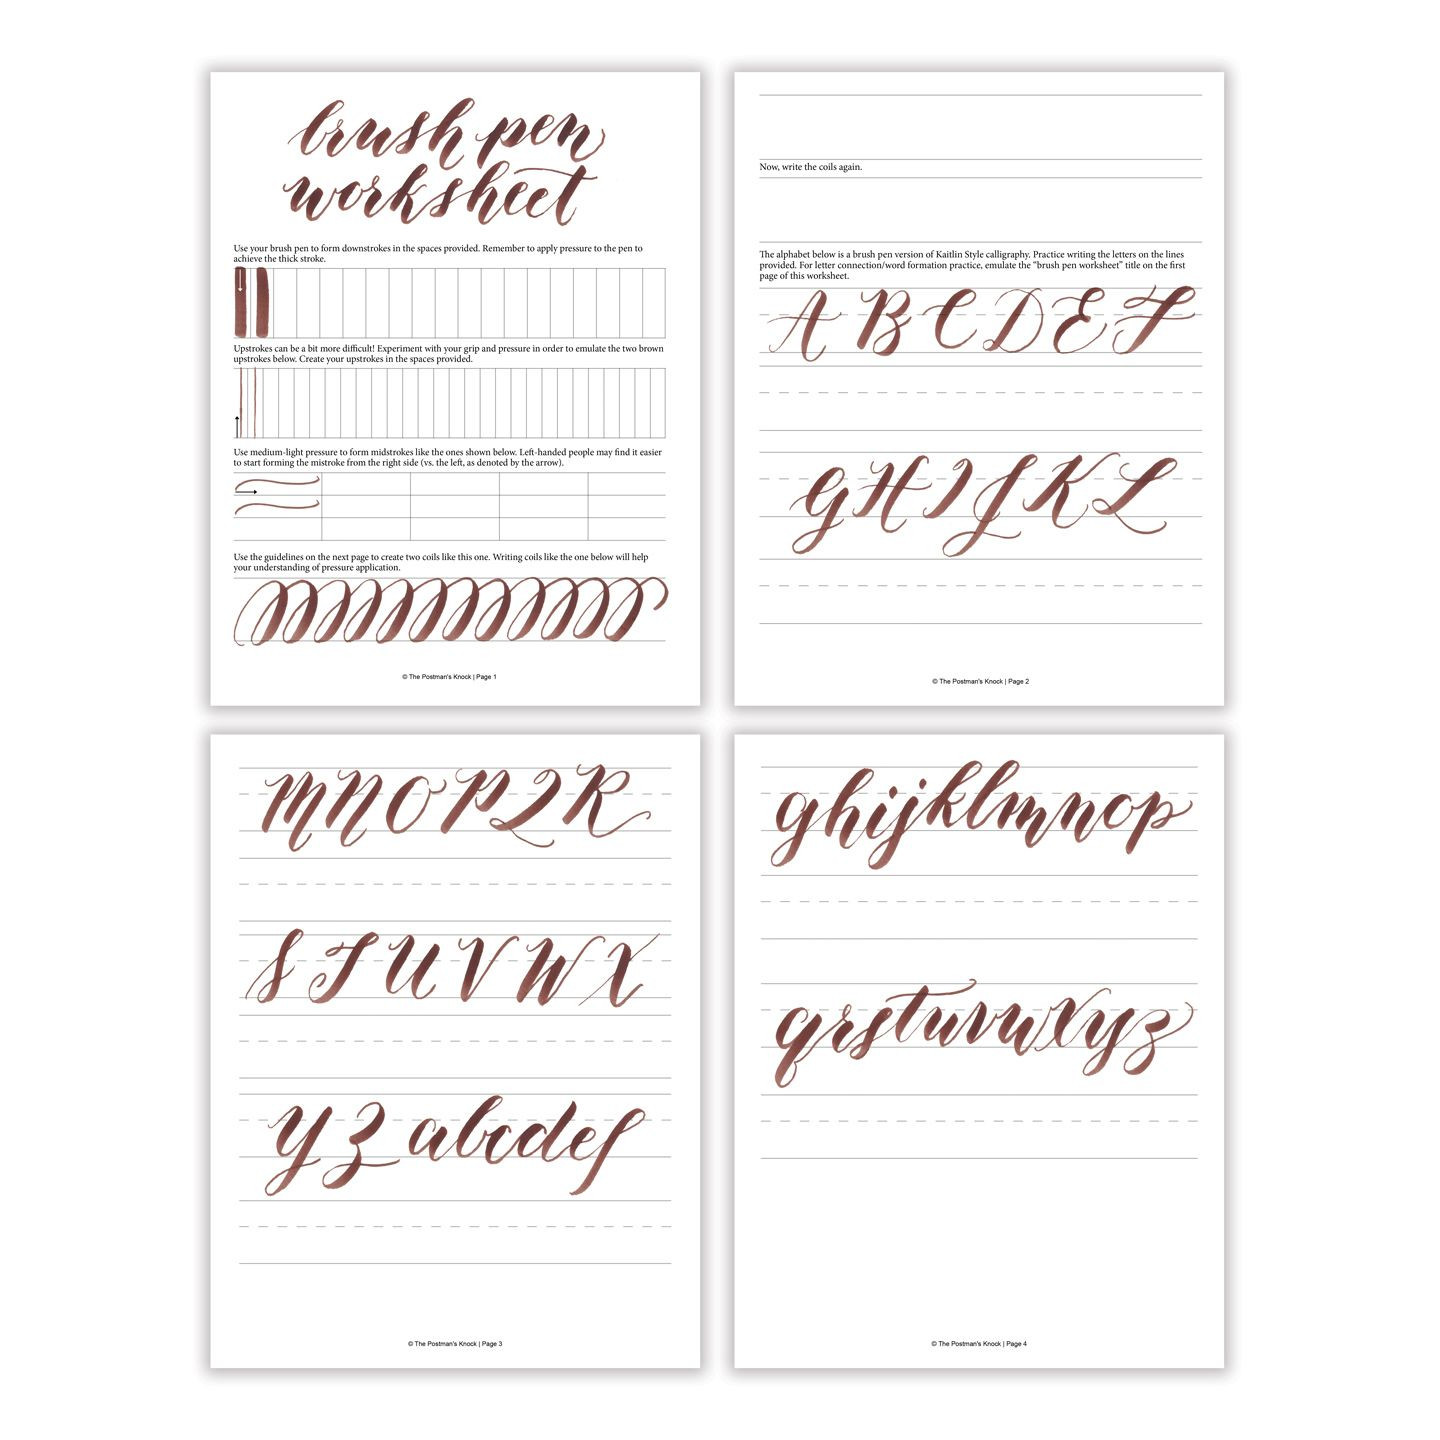 Free Calligraphy Worksheets Printable Free Basic Brush Pen Calligraphy Worksheet – the Postman S